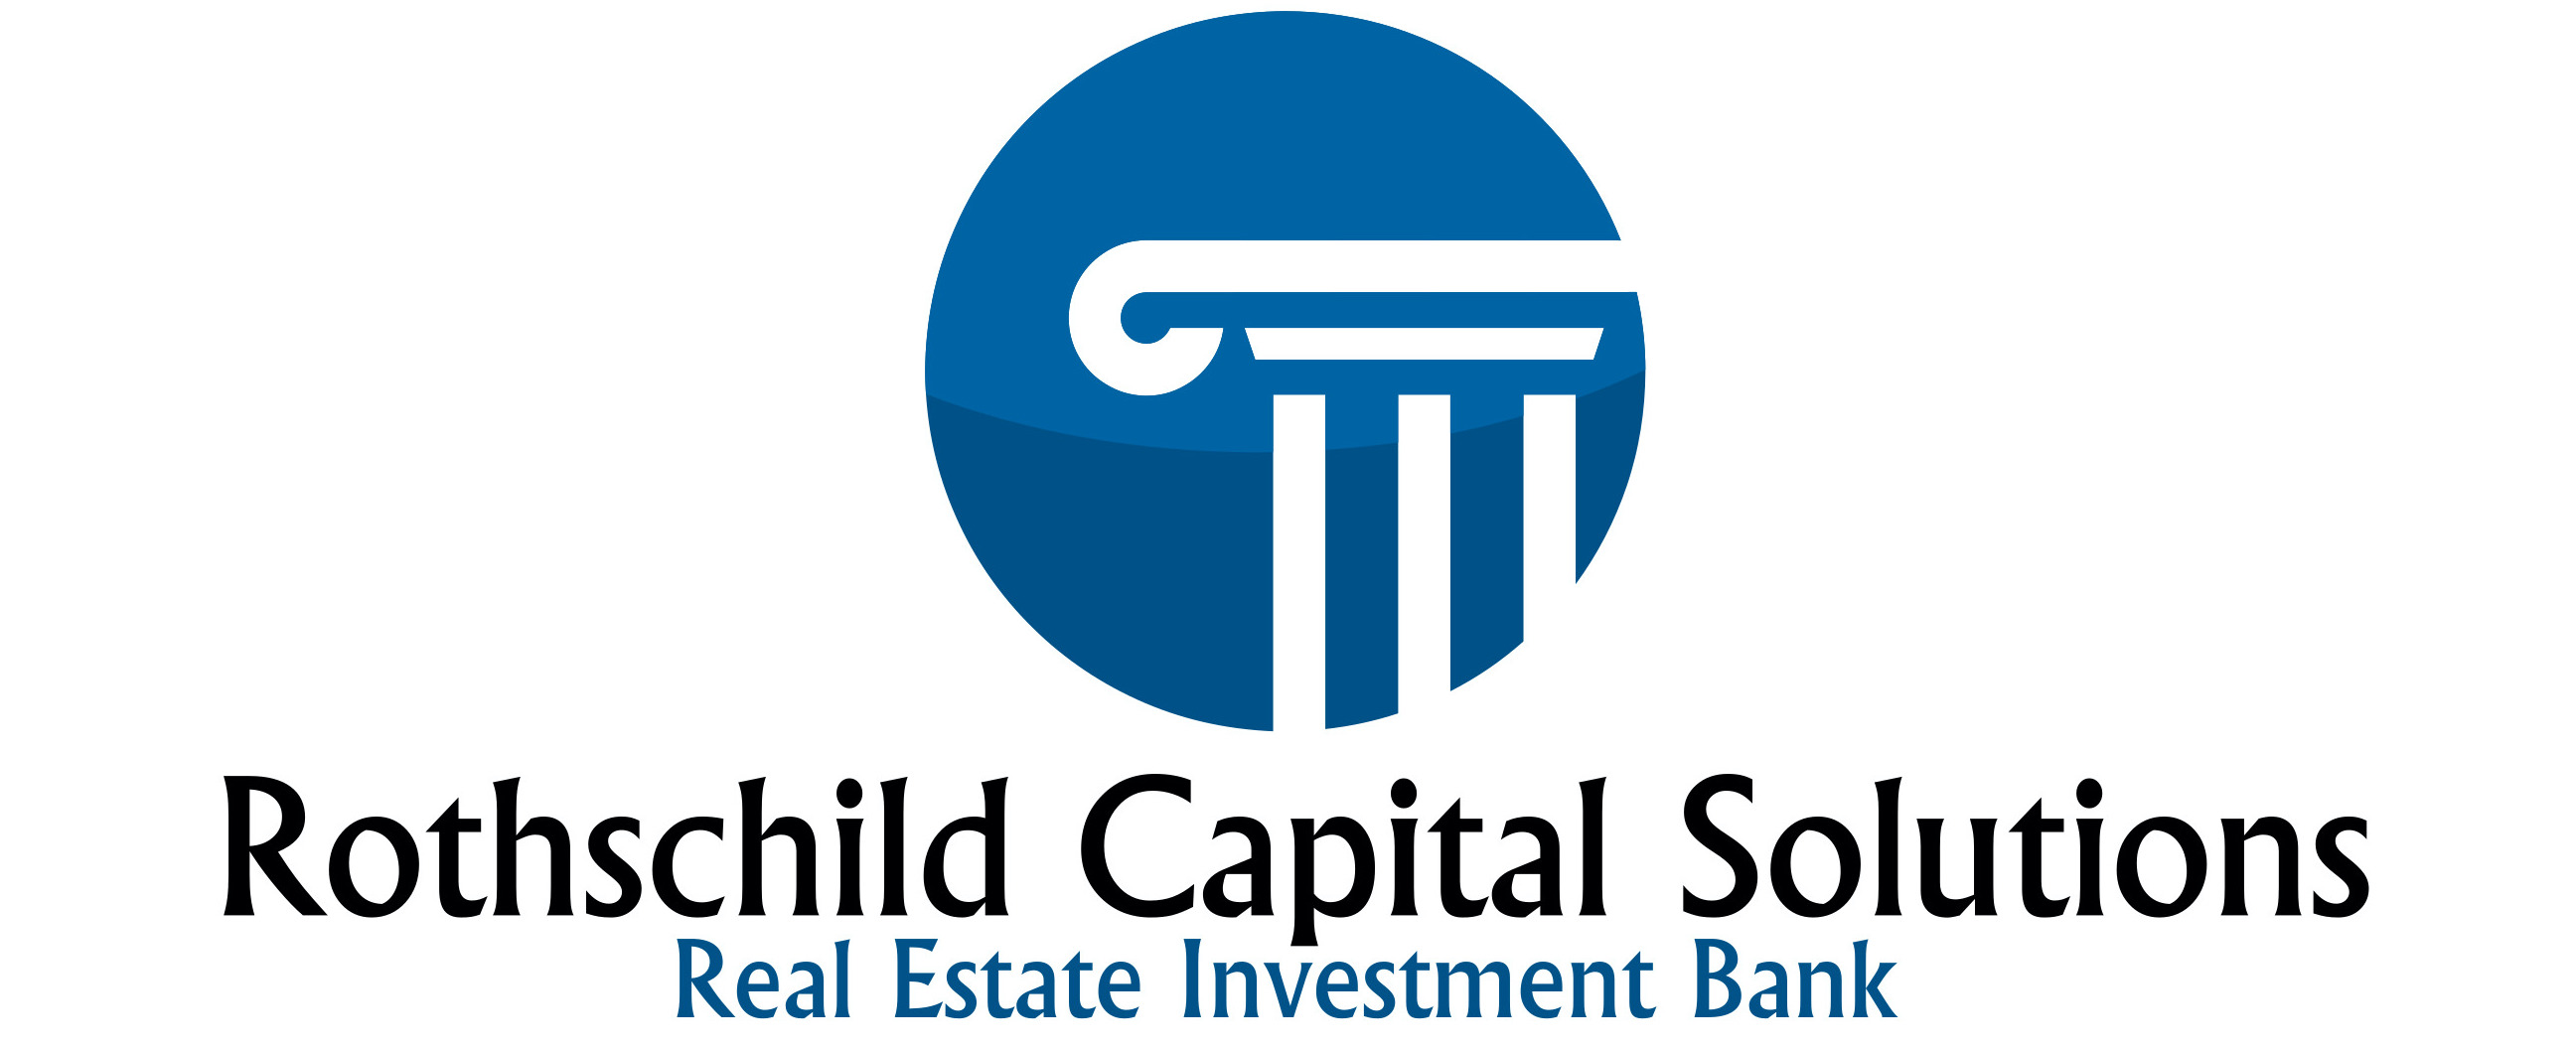 Rothschild Capital Solutions logo